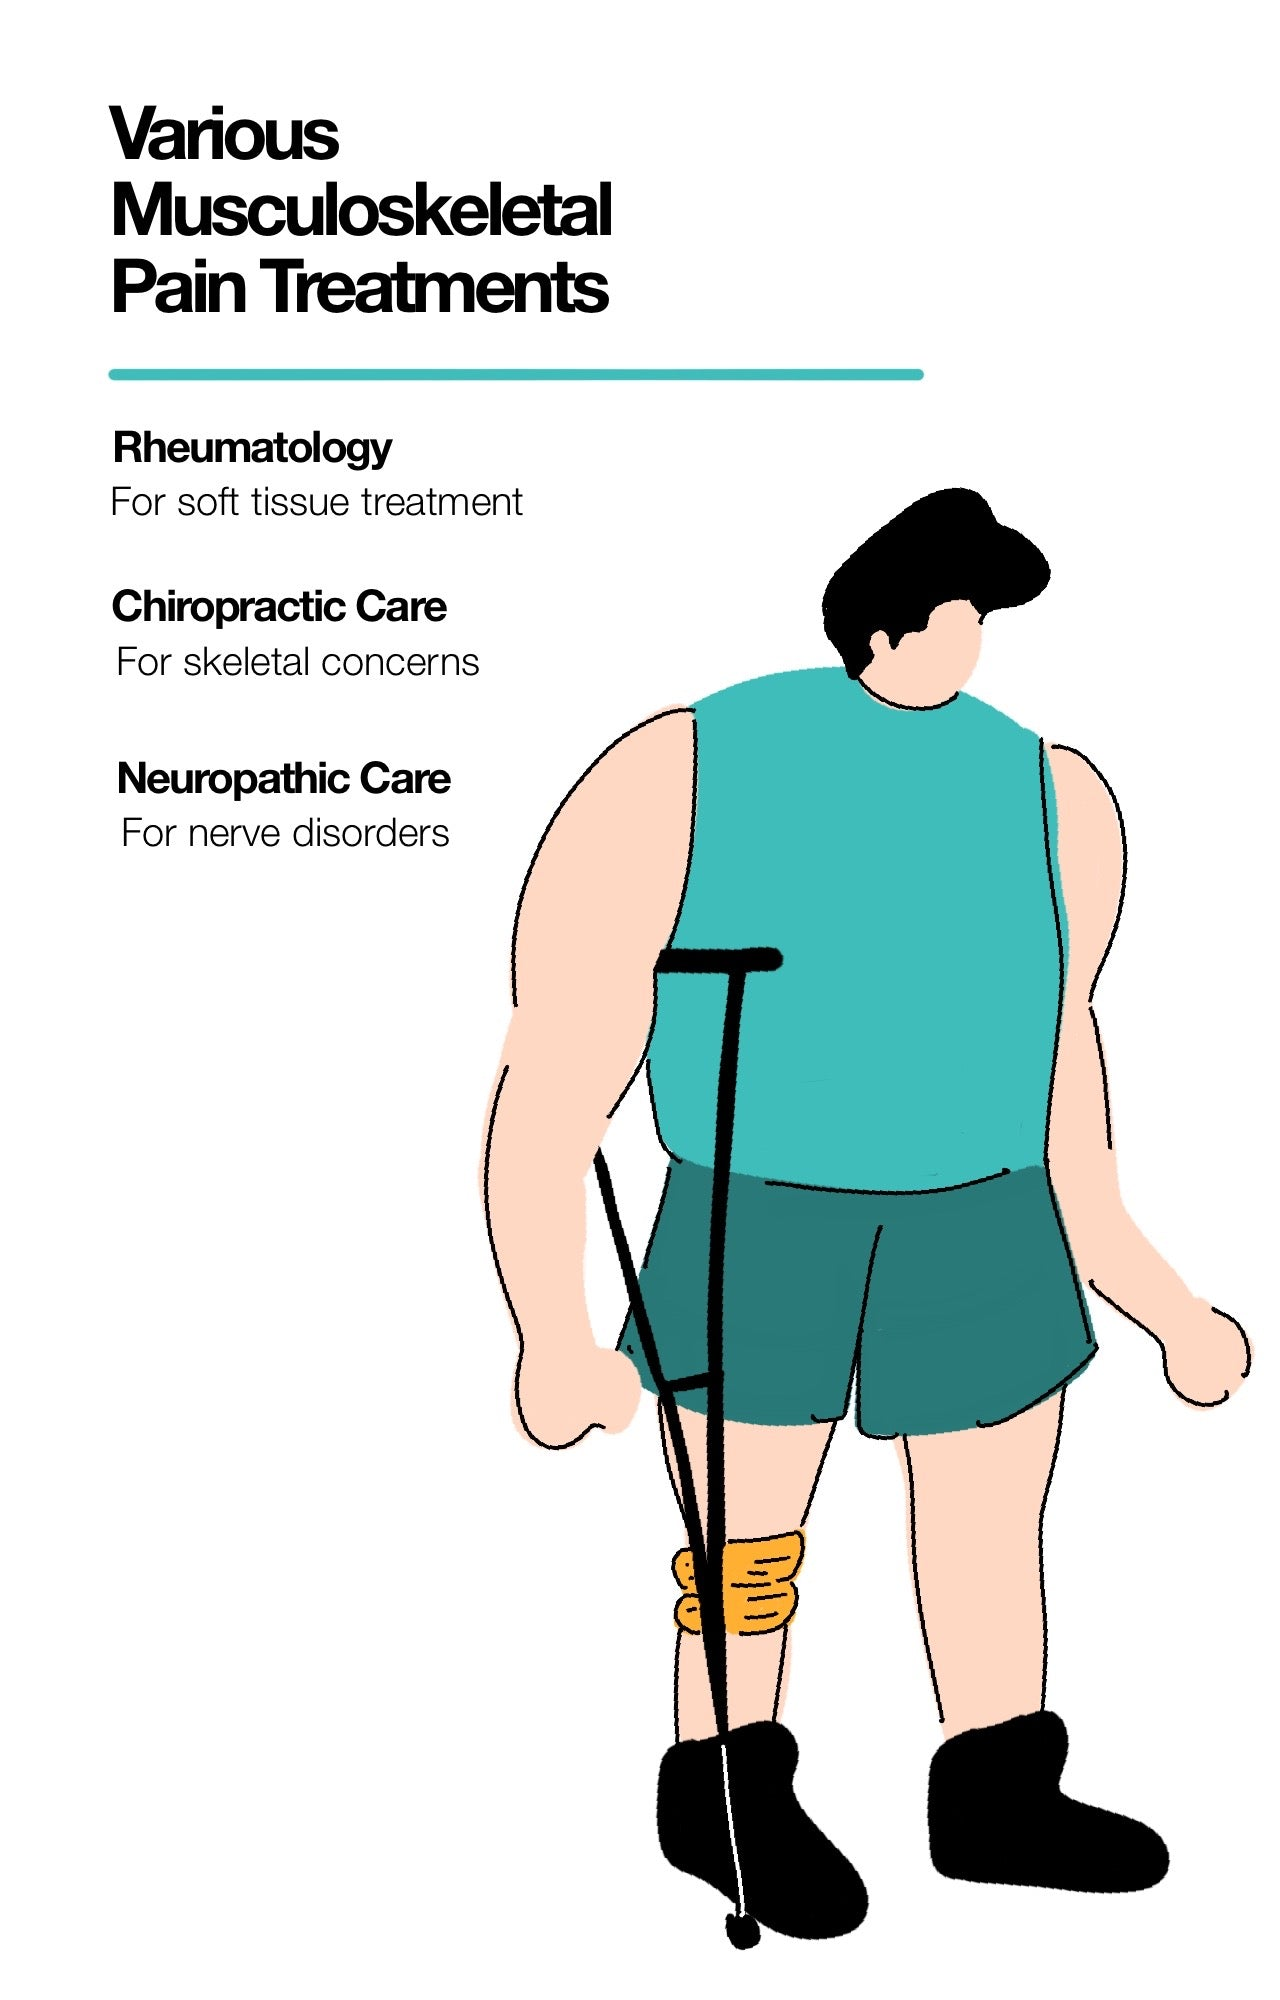 Various Musculoskeletal Pain Treatments